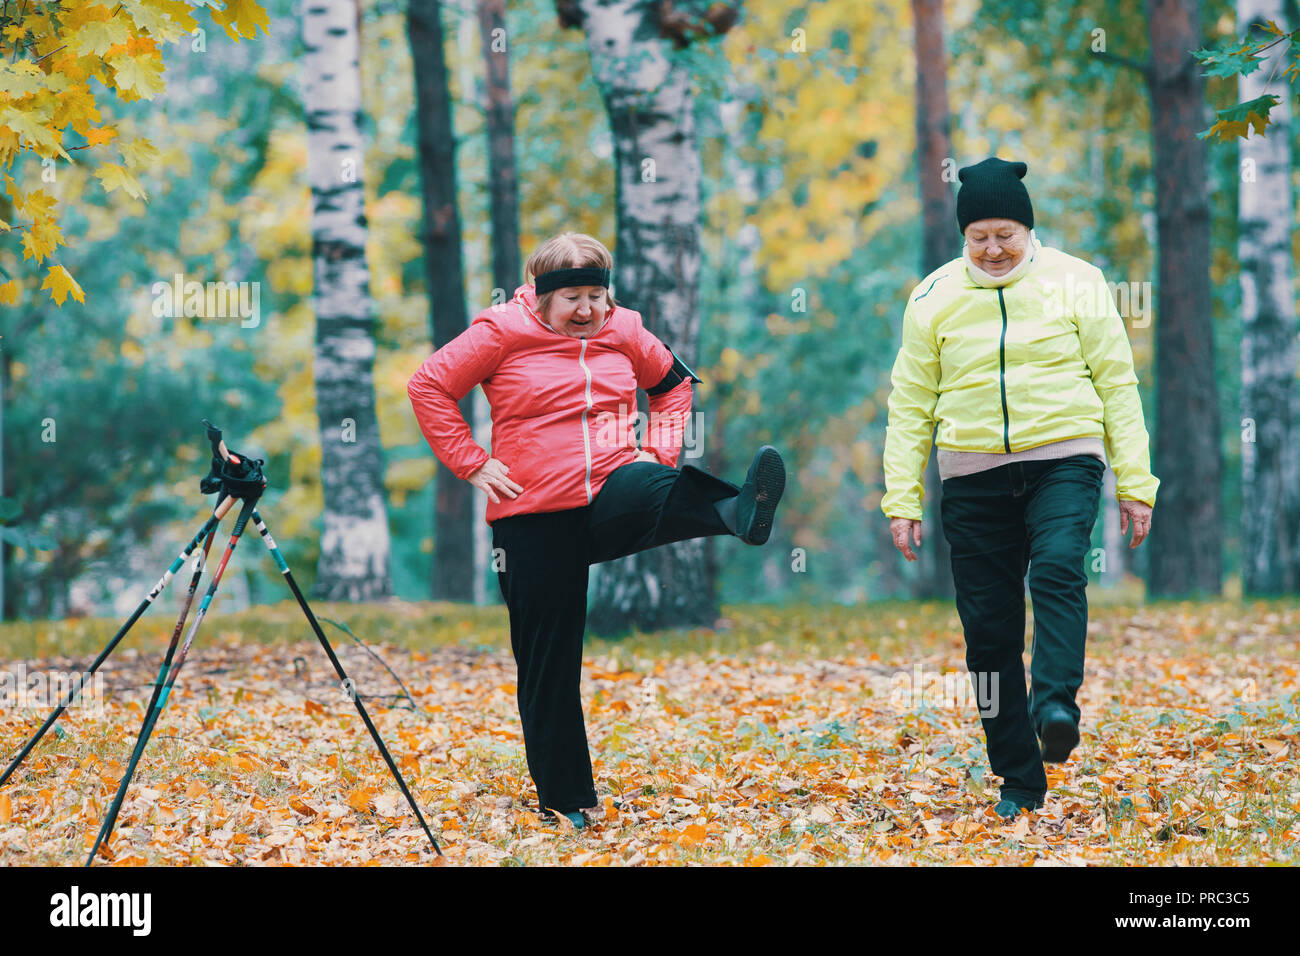 Mature woman performing a leg warm-up in an autumn park after a scandinavian walk - Stock Image